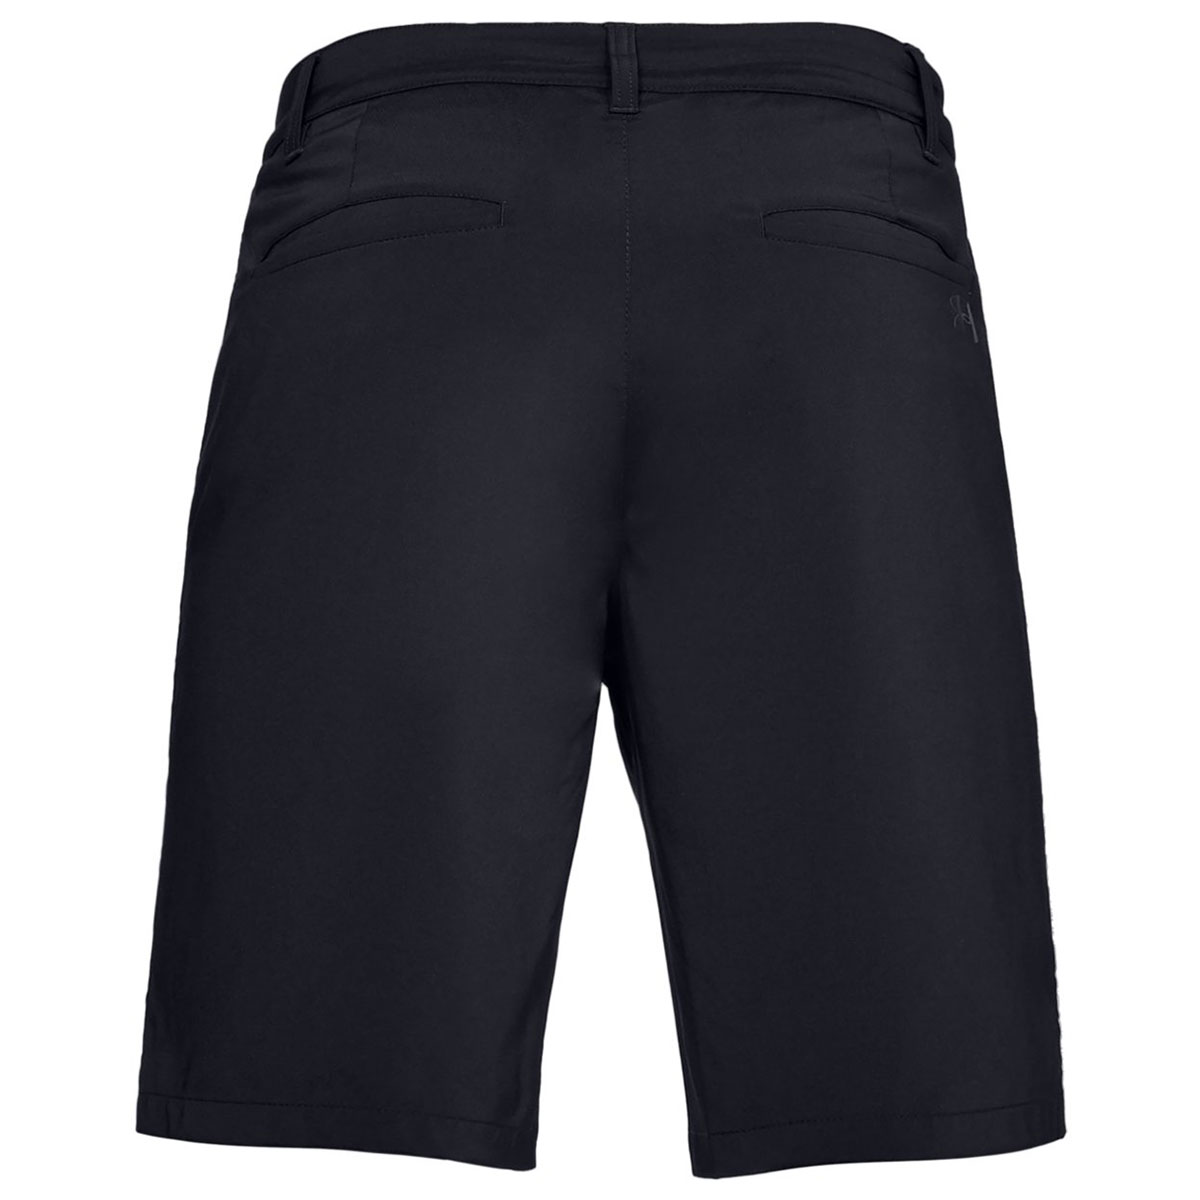 Under-Armour-Mens-EU-Tech-Stretch-Soft-Fitted-Golf-Shorts Indexbild 5